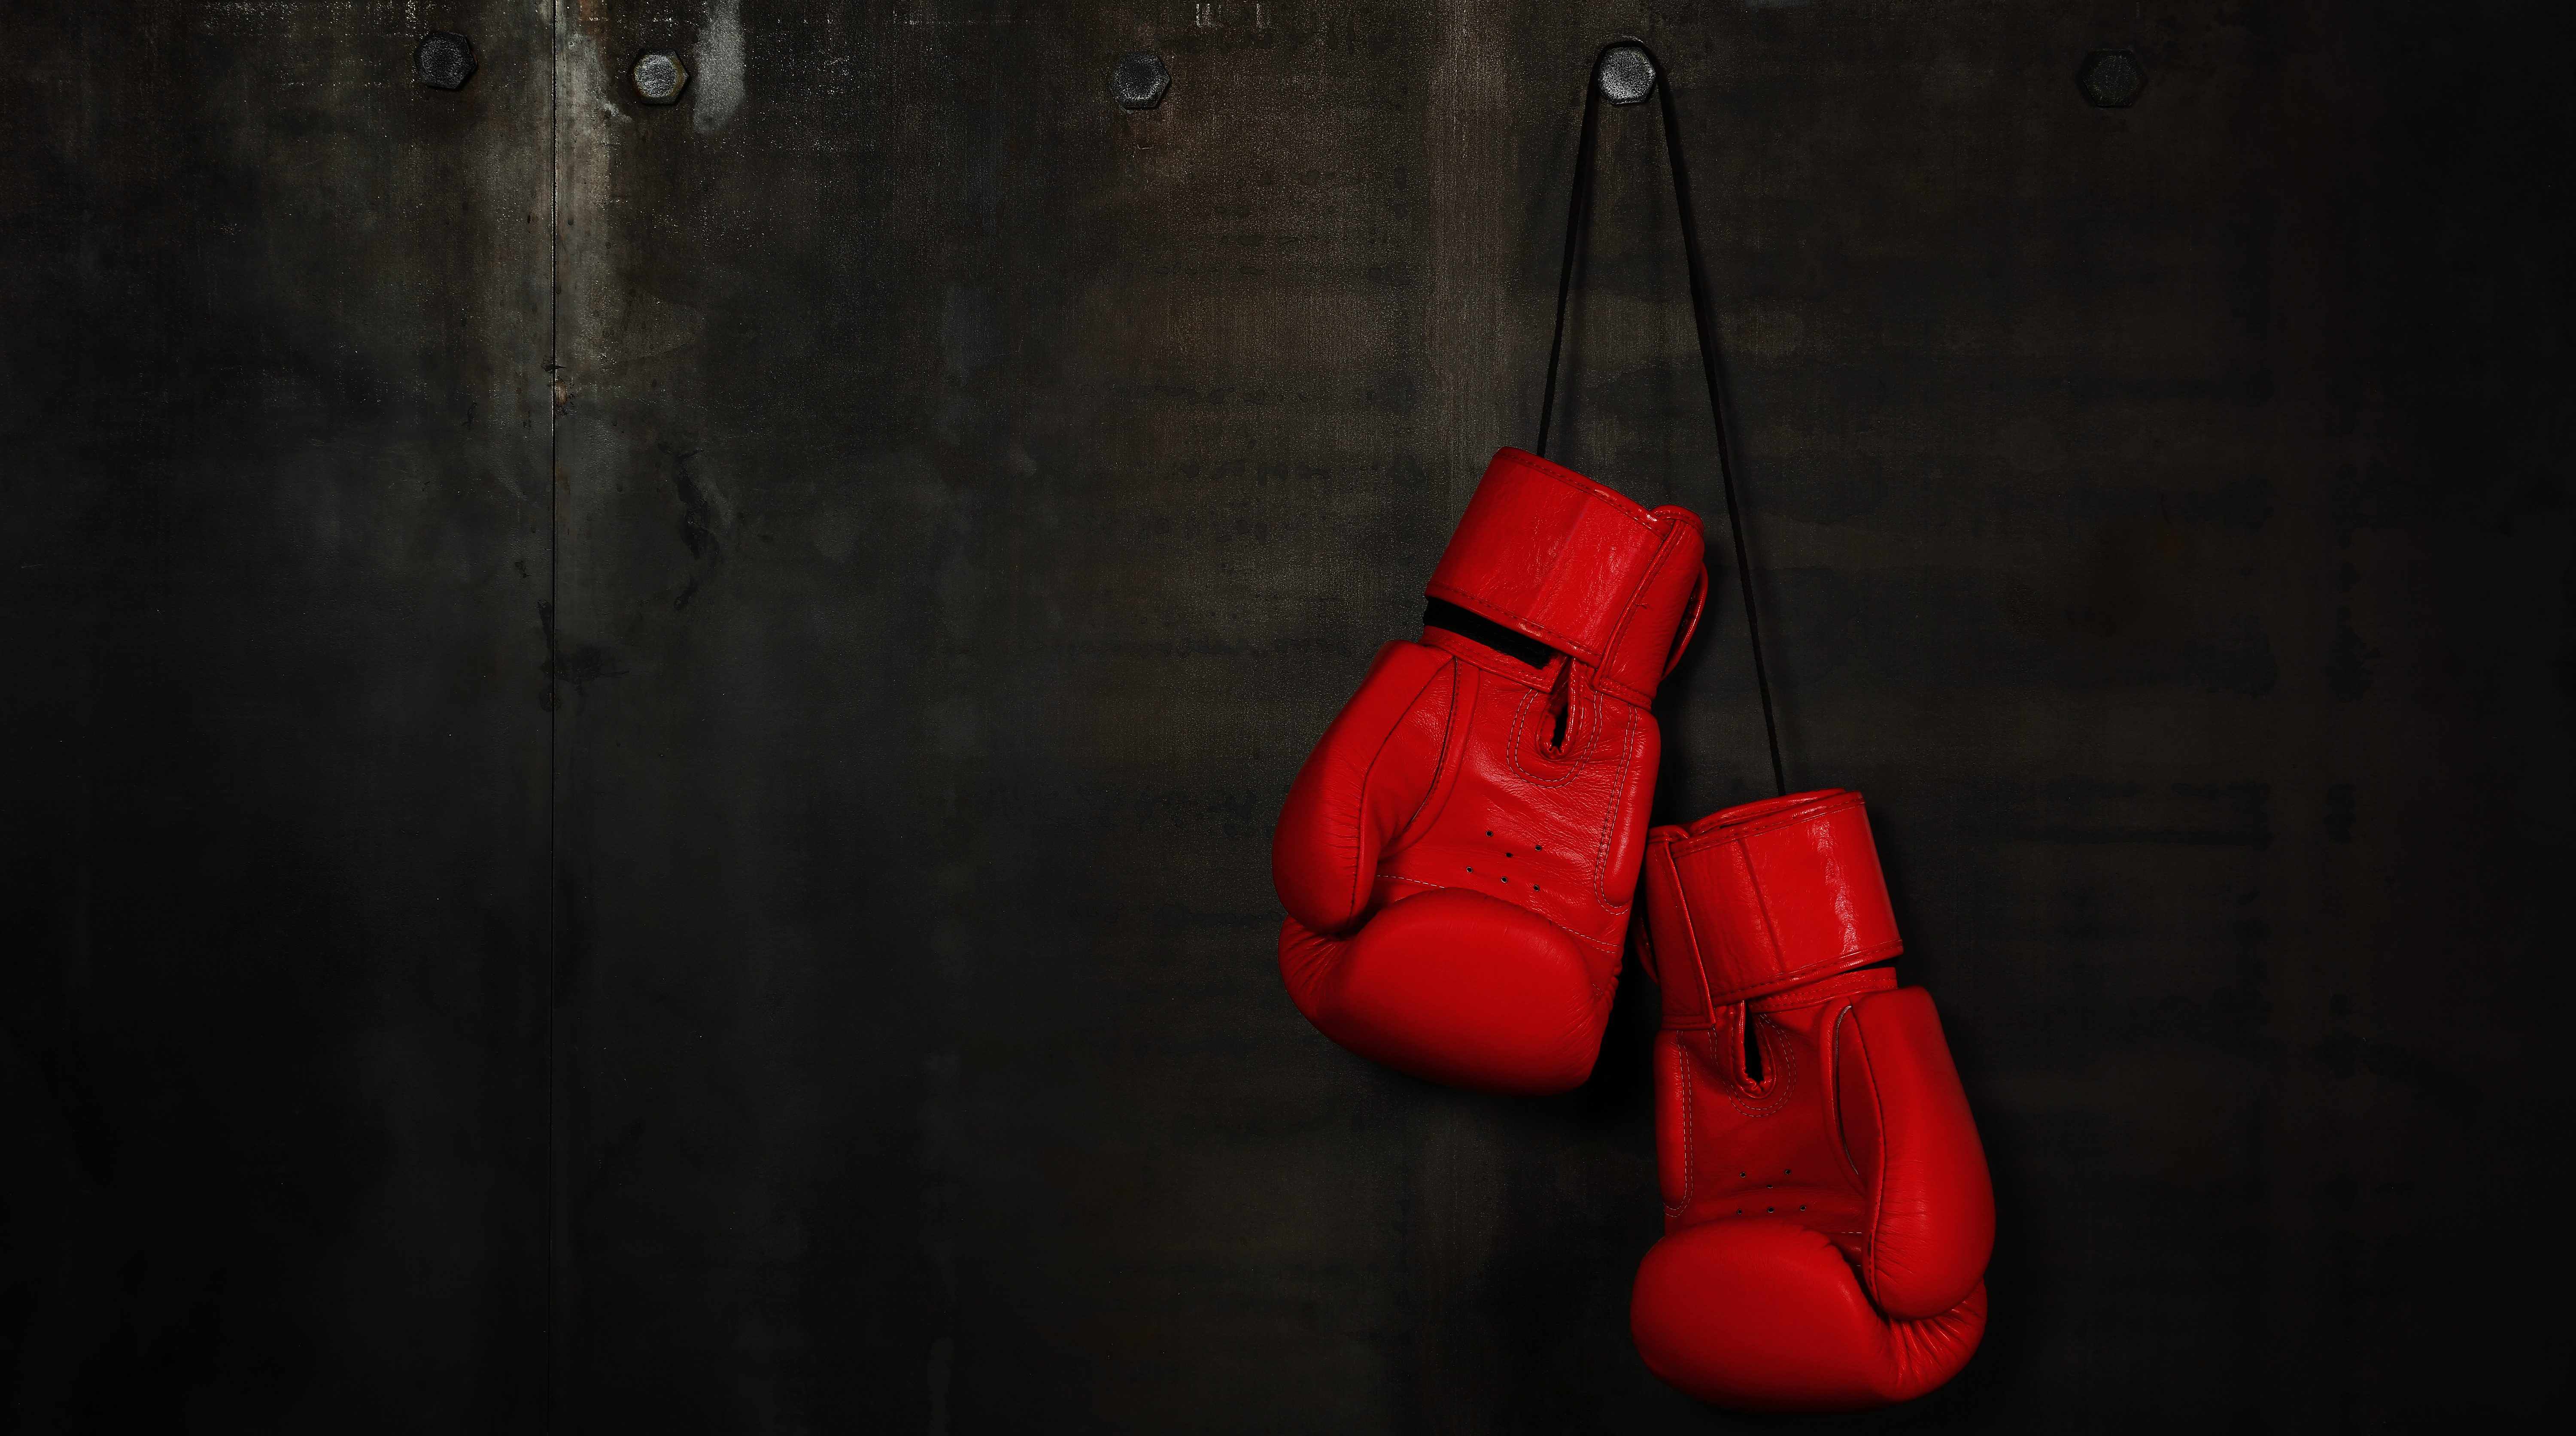 Close-Up Of Red Boxing Gloves Hanging On Wall